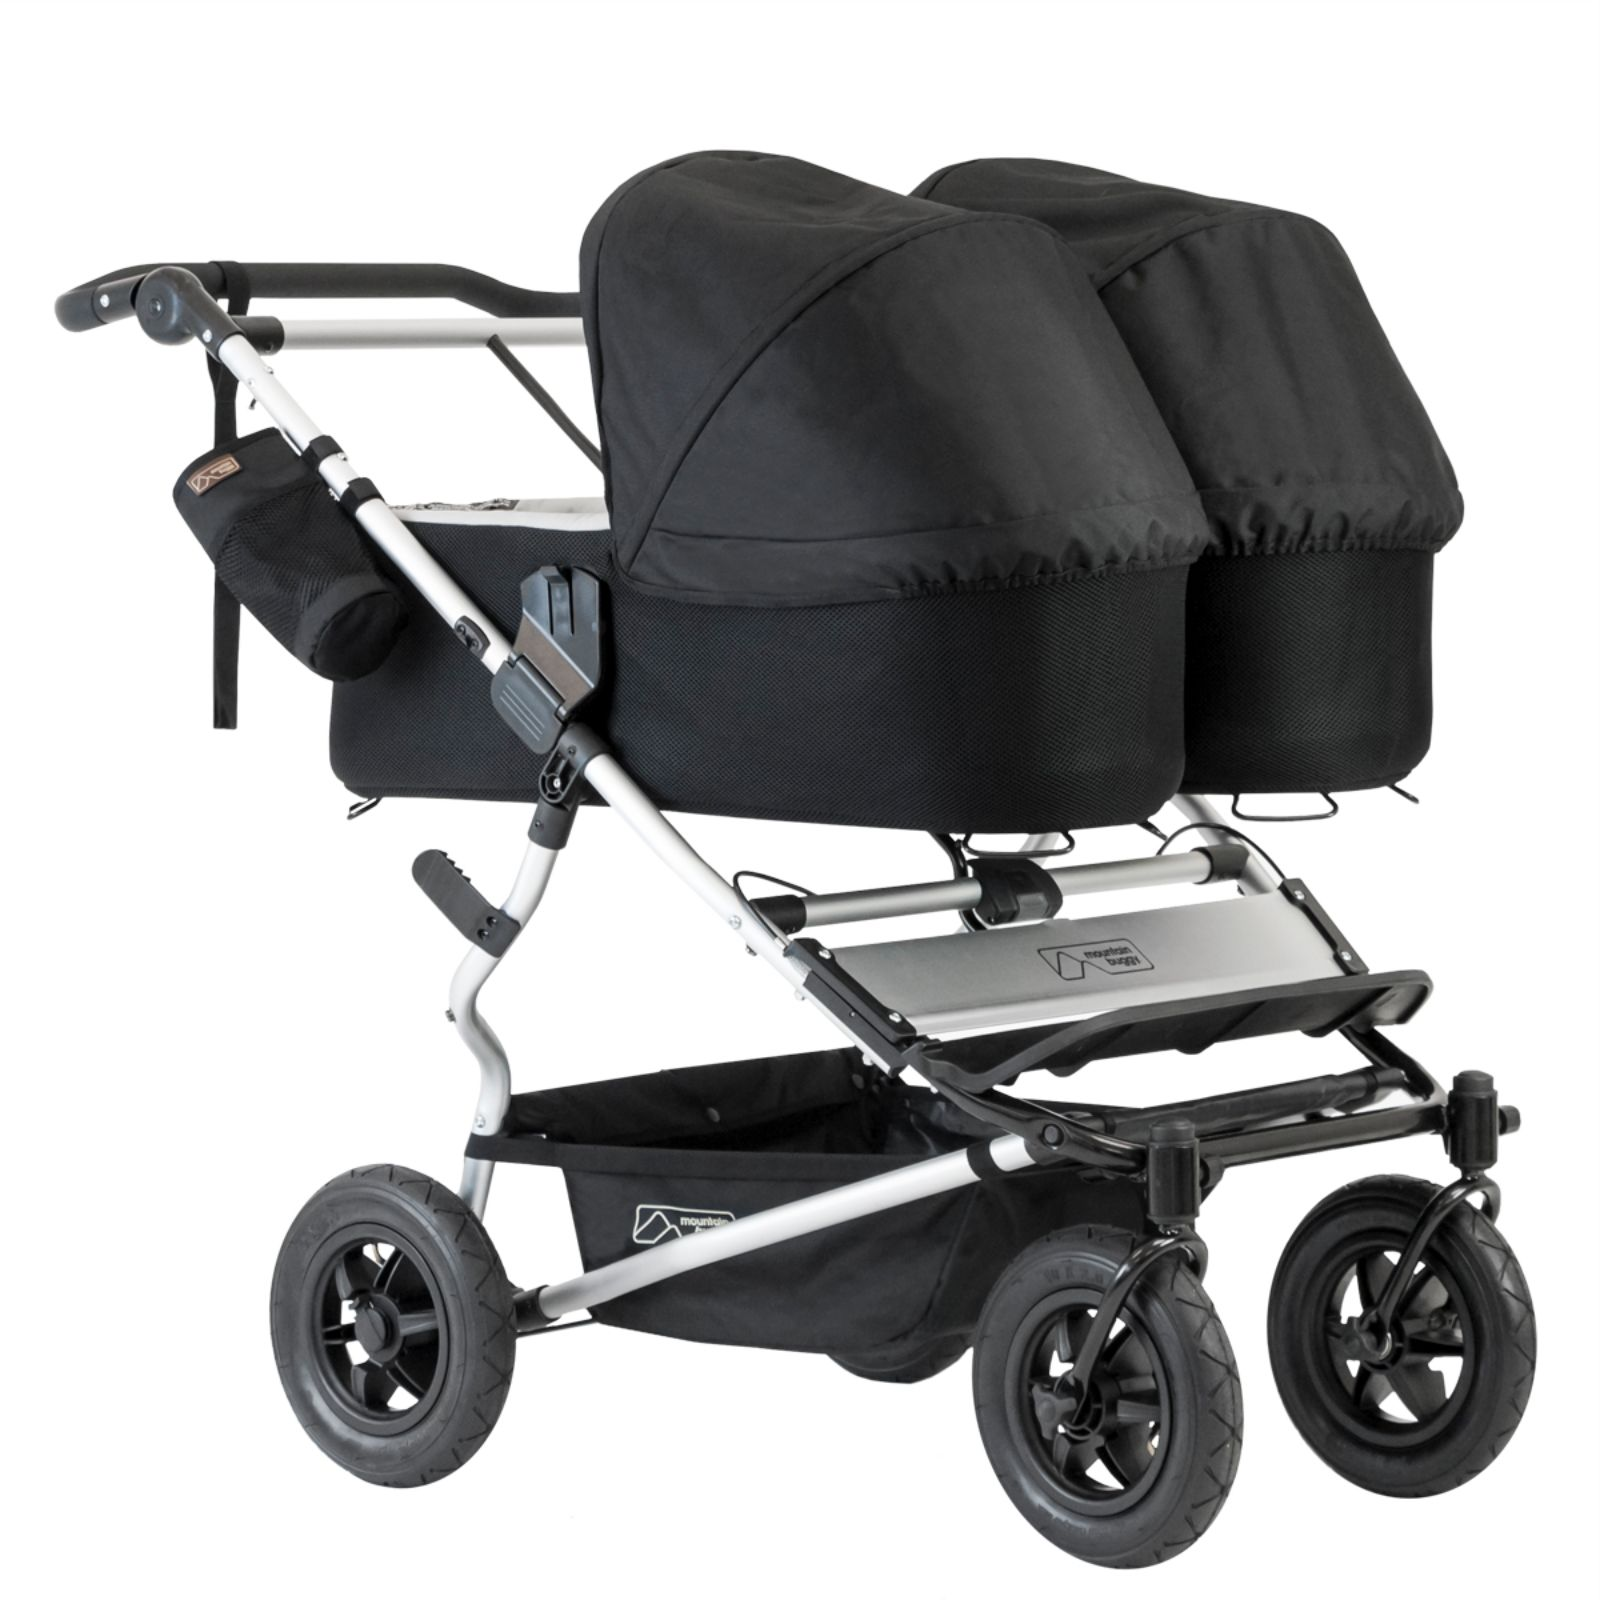 Luxury Double Pushchair Mountain Buggy Duet V3 Double Travel System 2 Carrycots